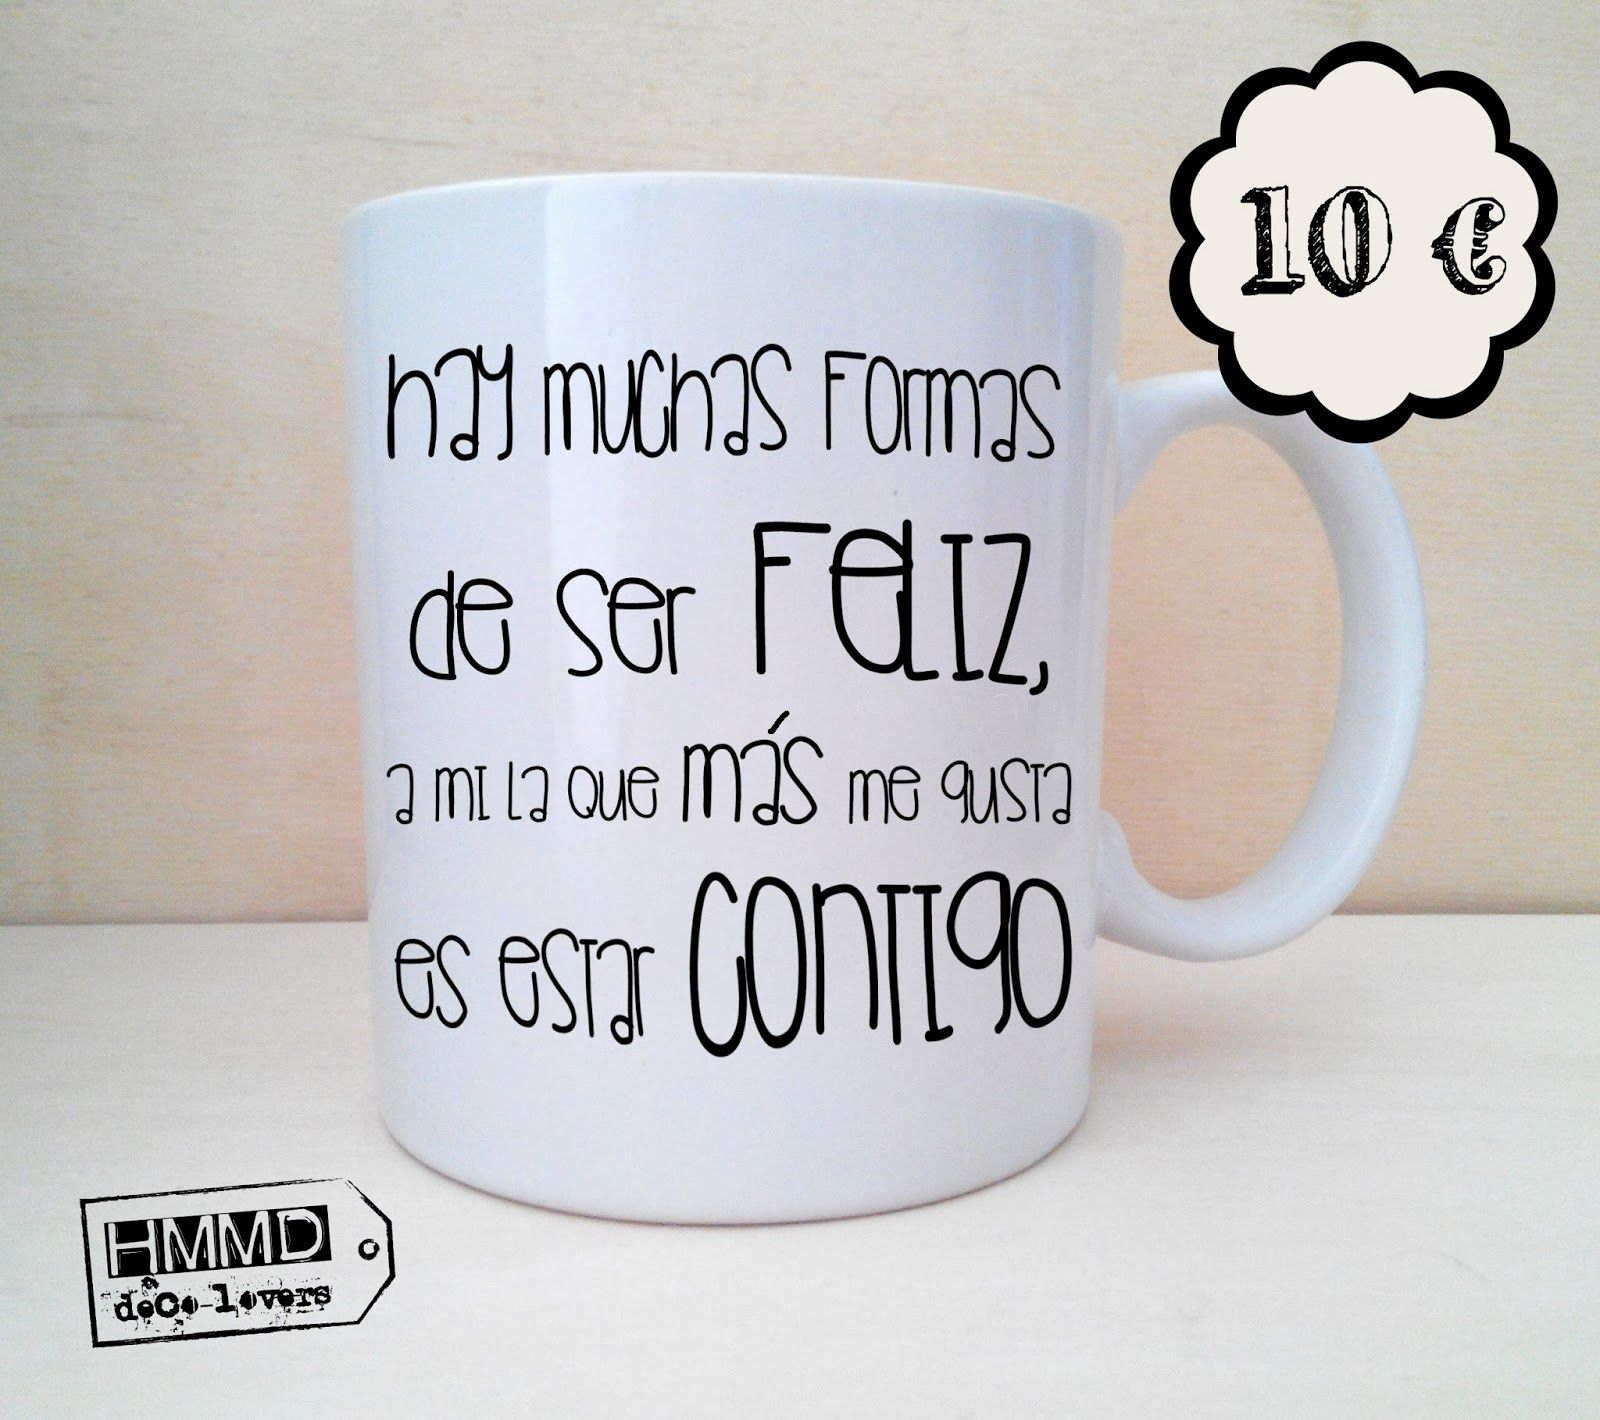 Colecci n de tazas in love in love mugs collection - Ideas para sanvalentin ...